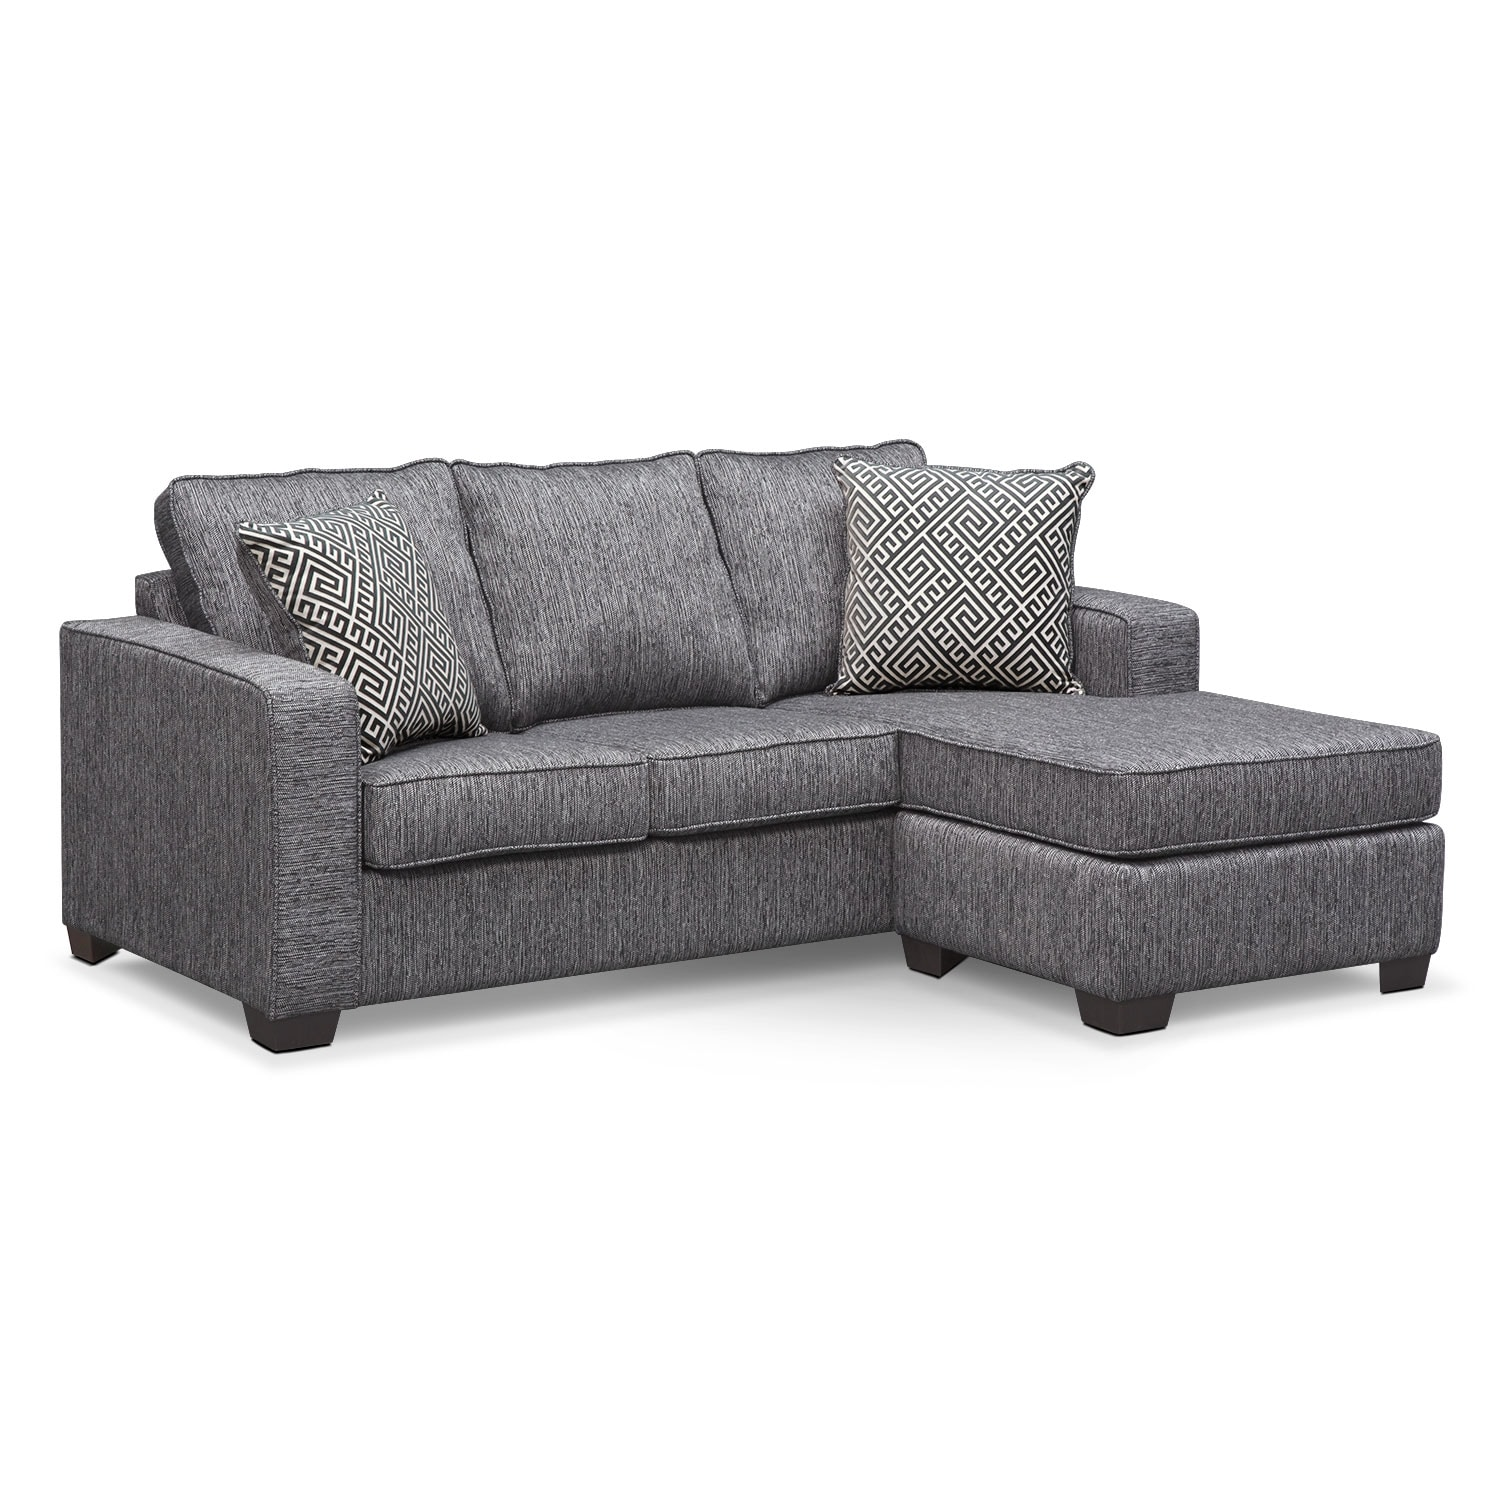 Sleeper Couch Gallery